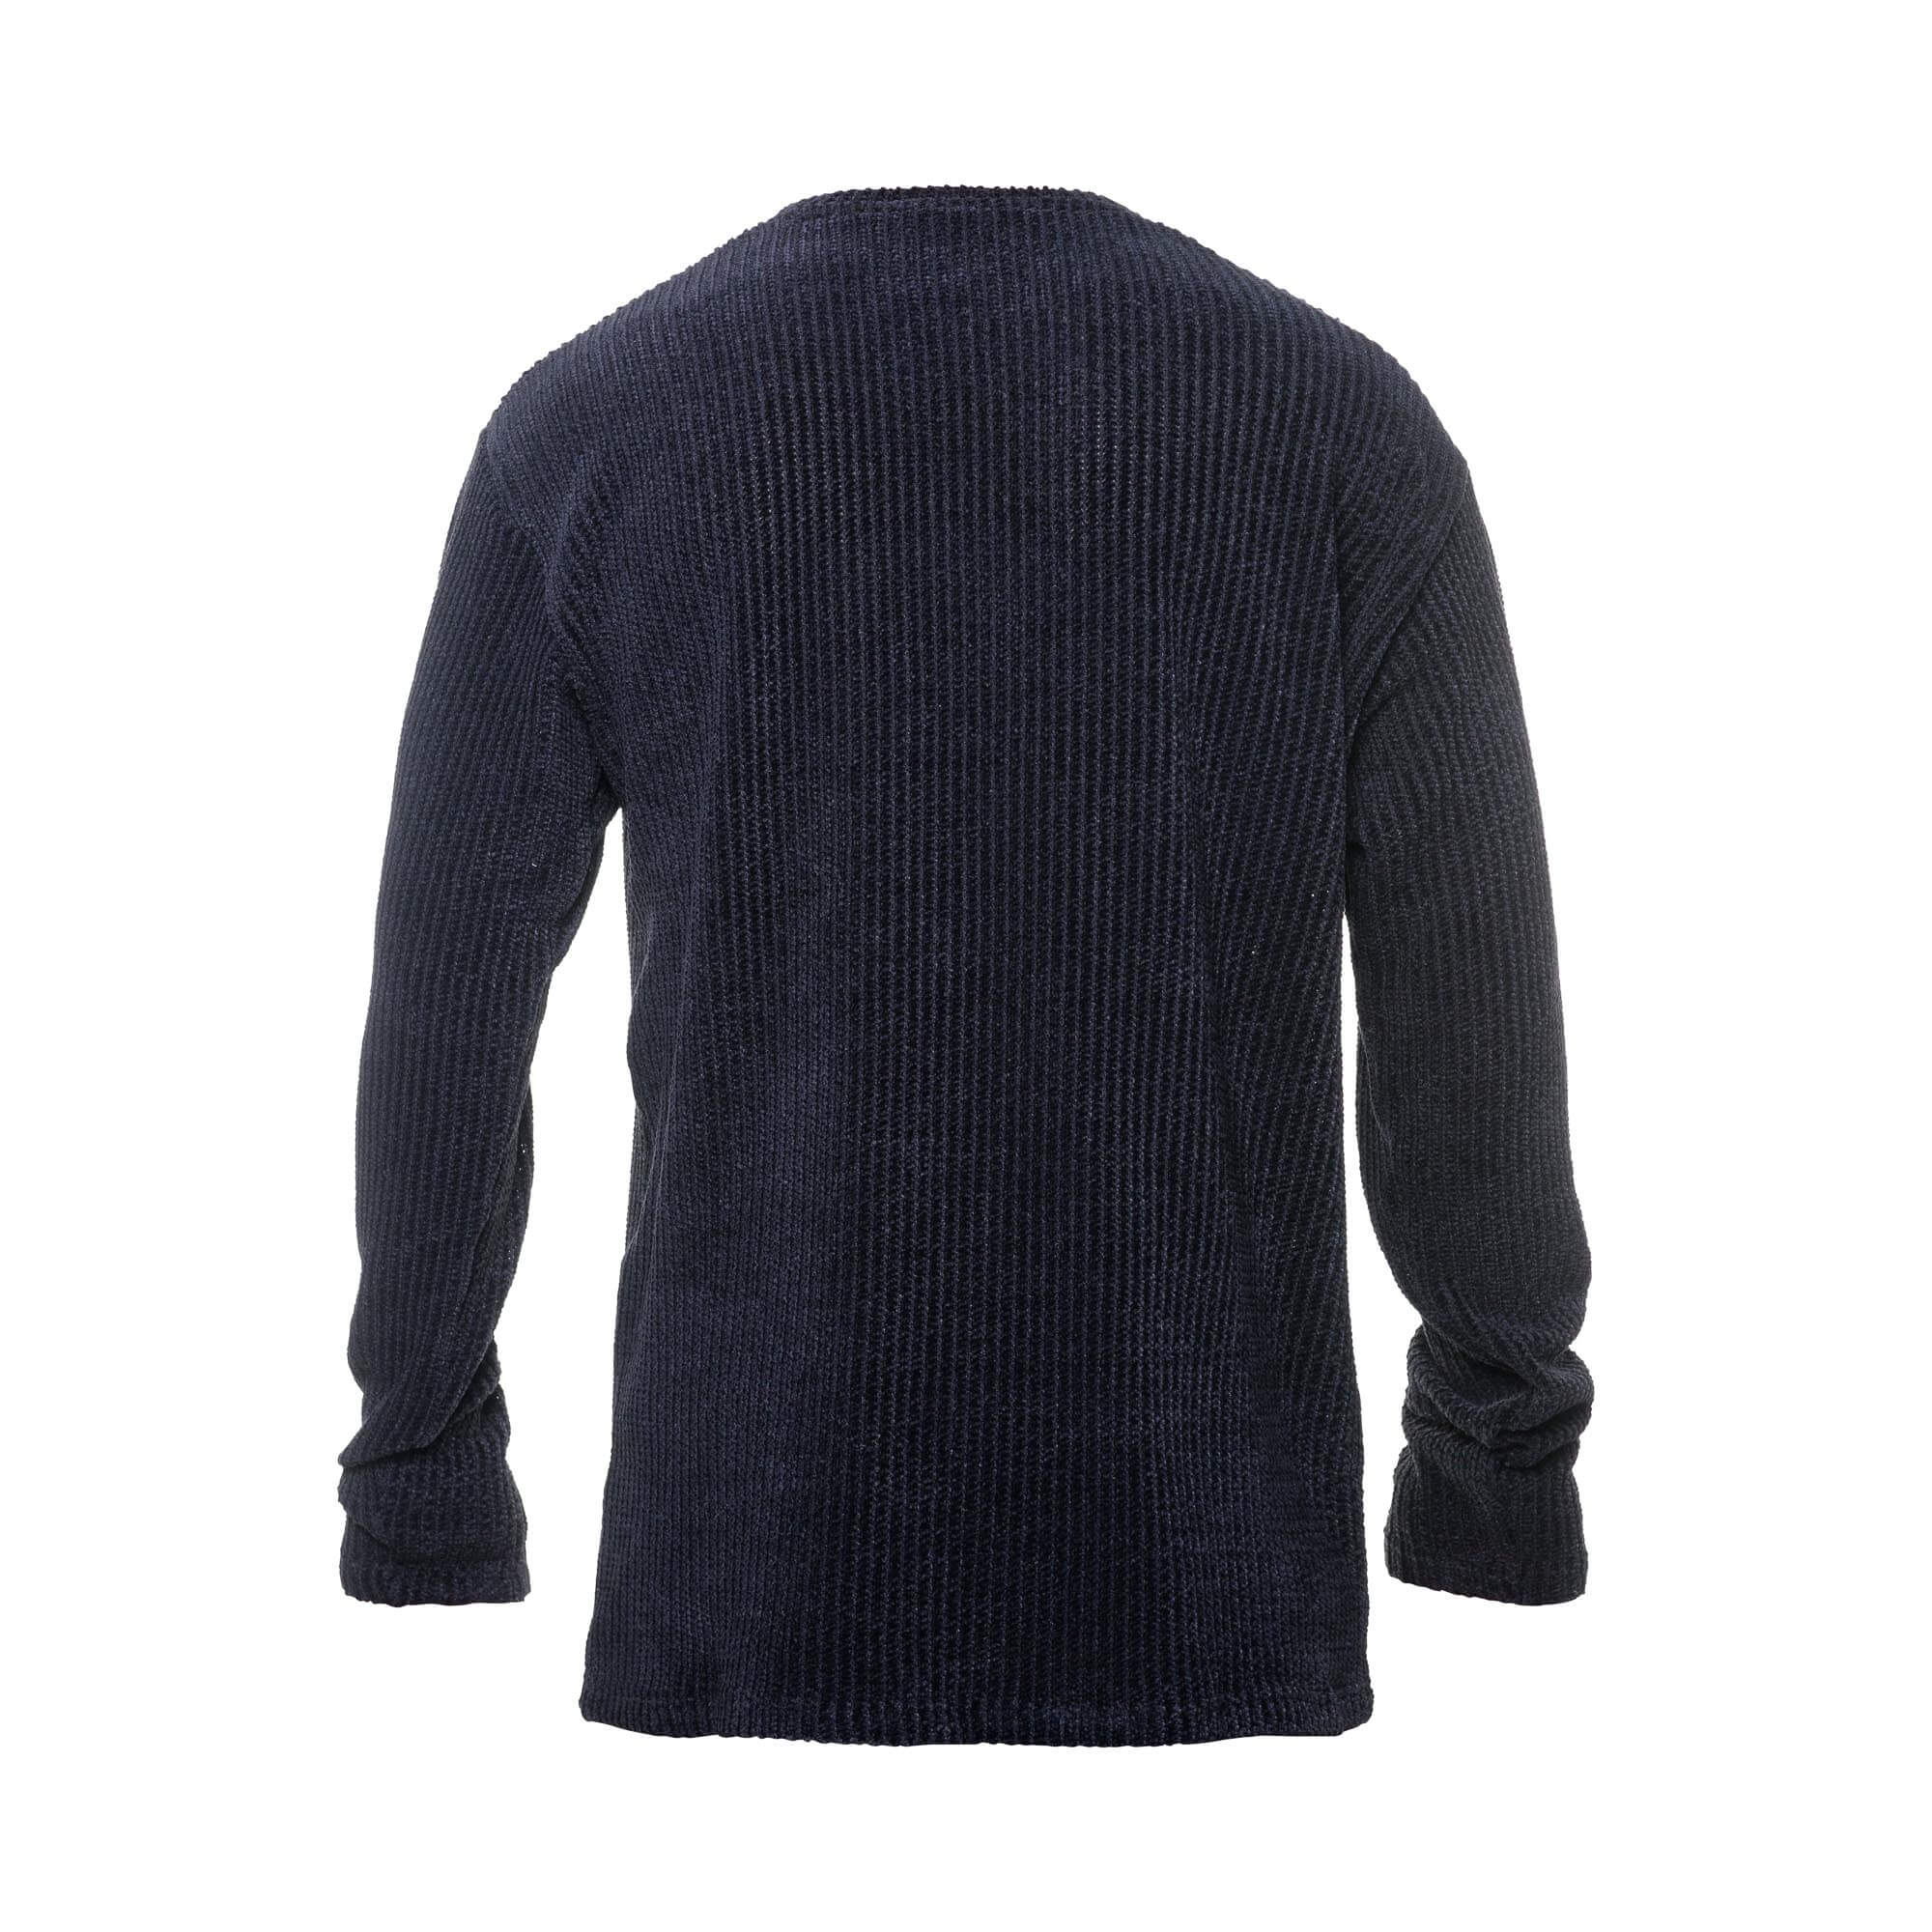 wool black - back